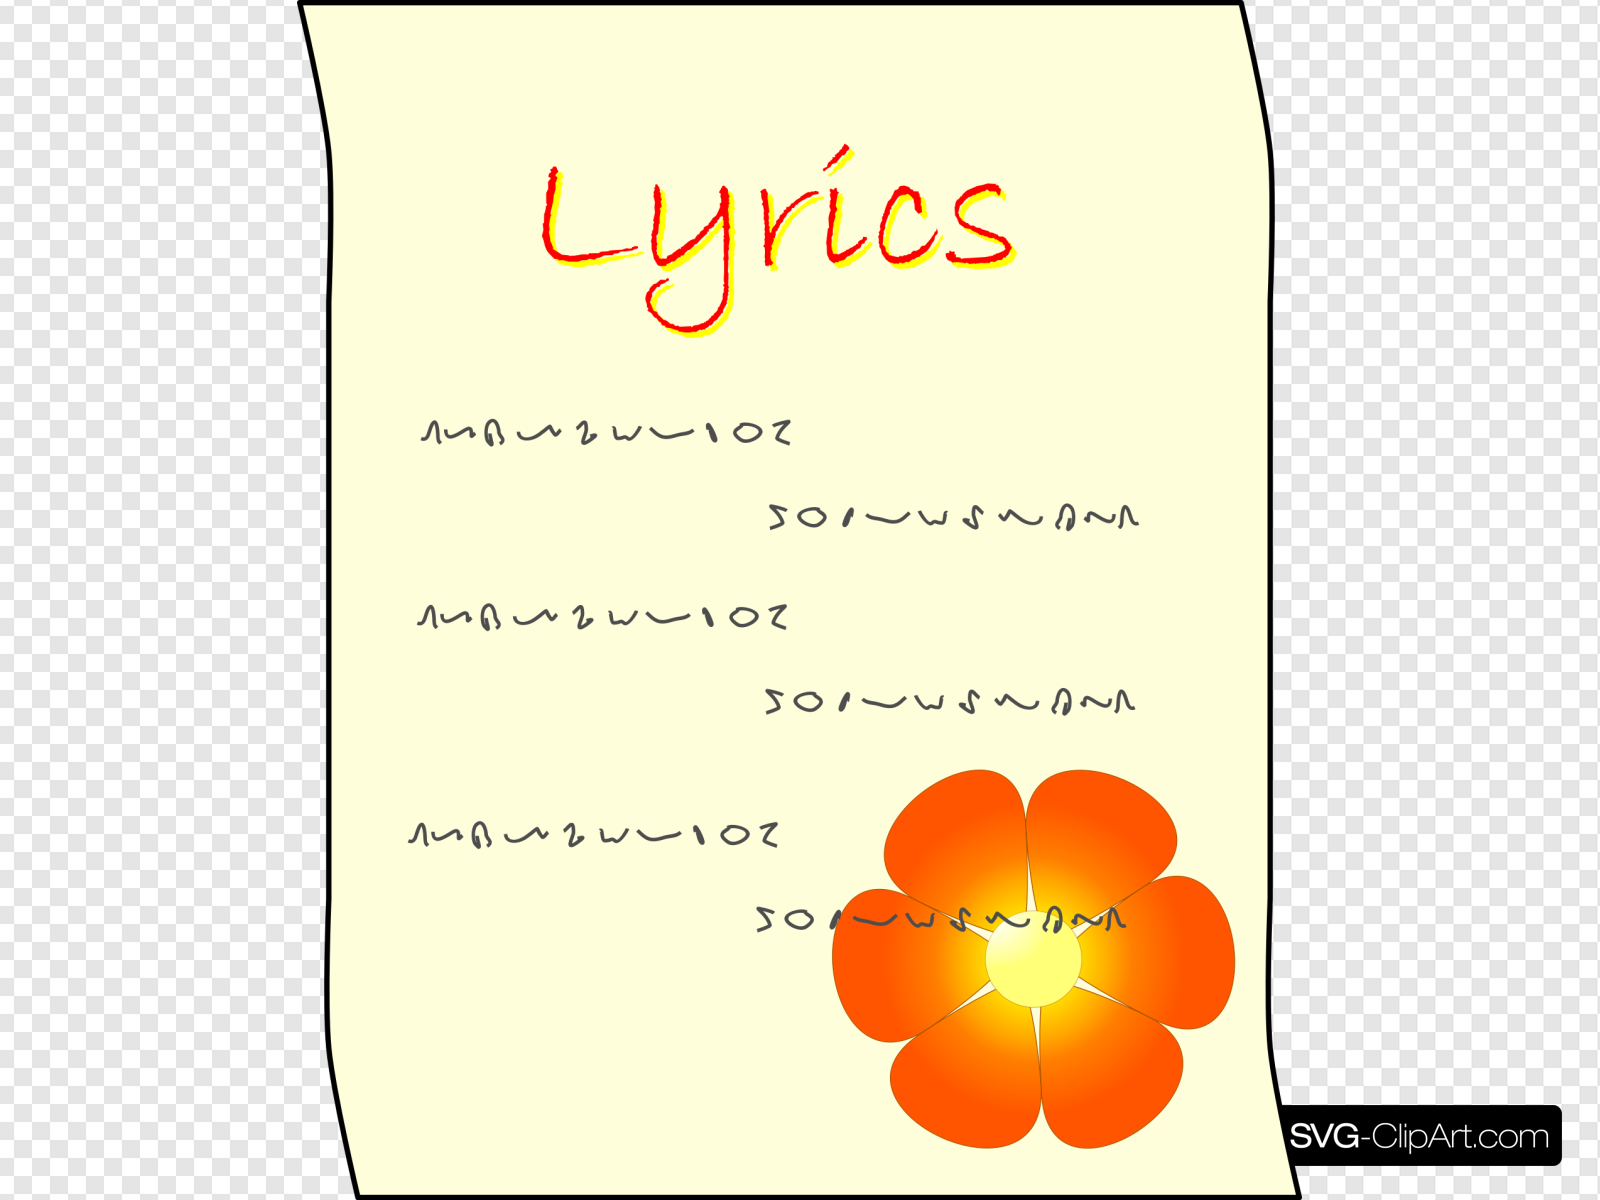 Lyrics Clip art, Icon and SVG.